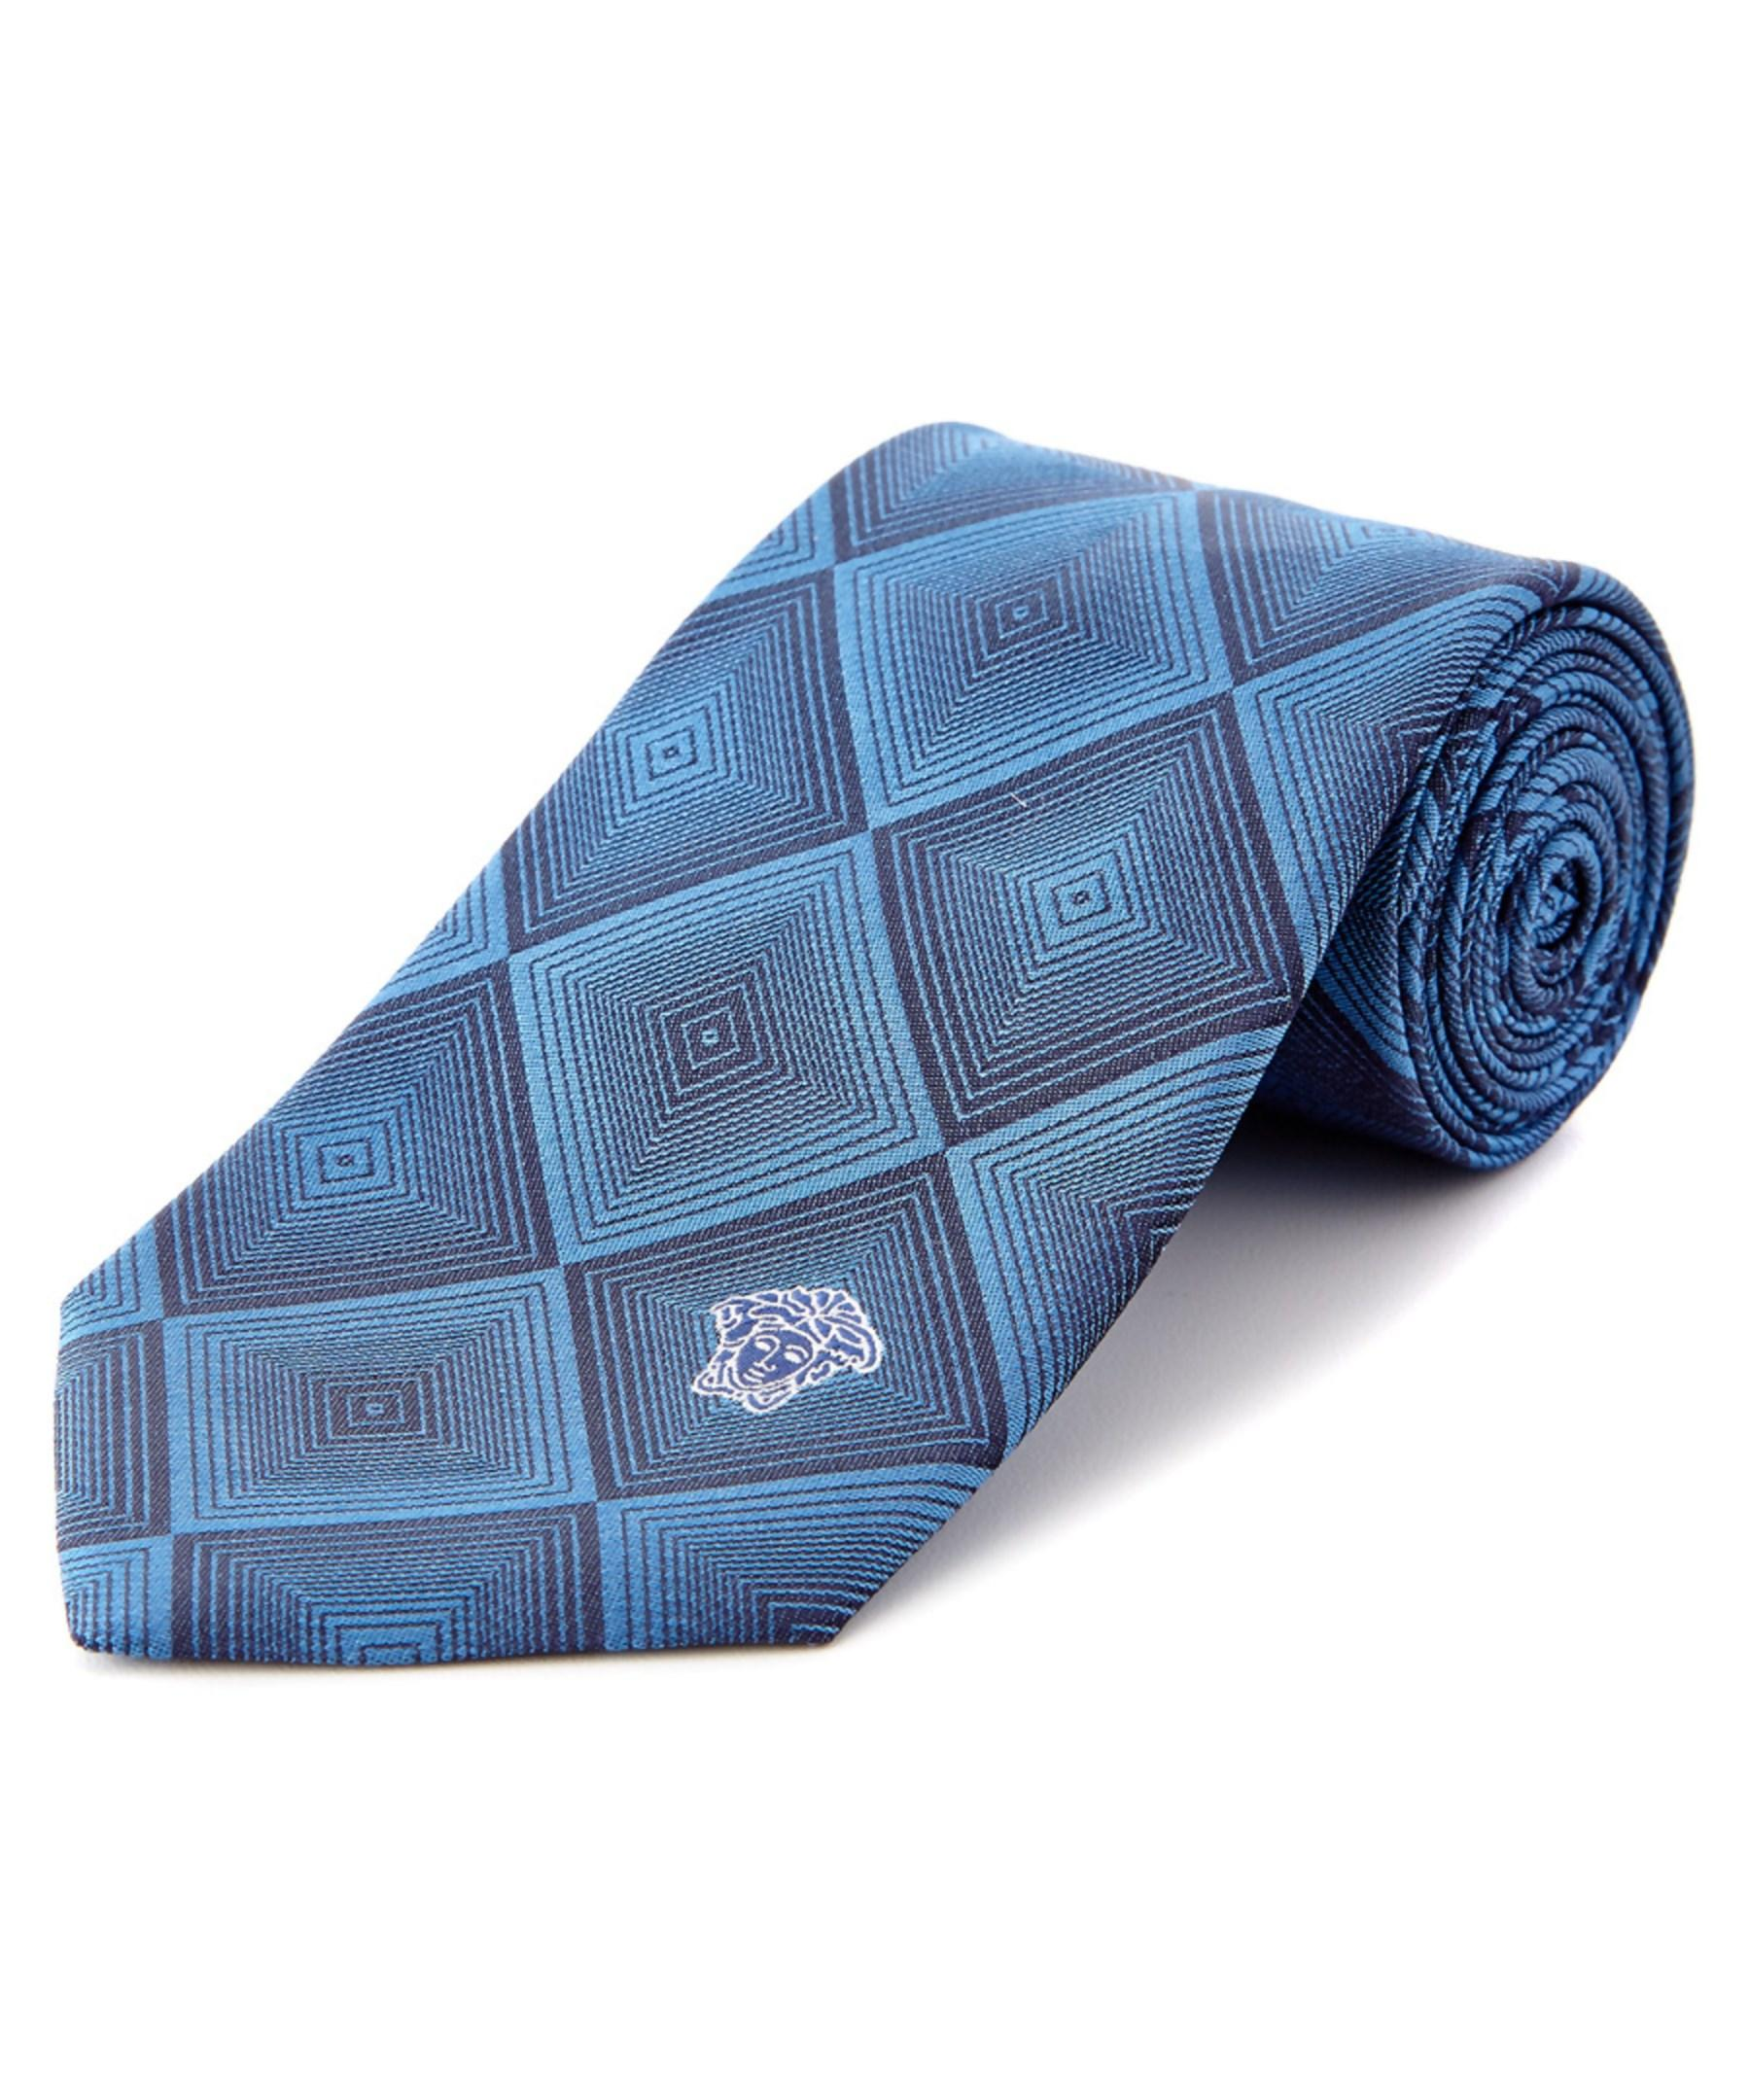 versace collection blue dizzy square silk tie in blue for